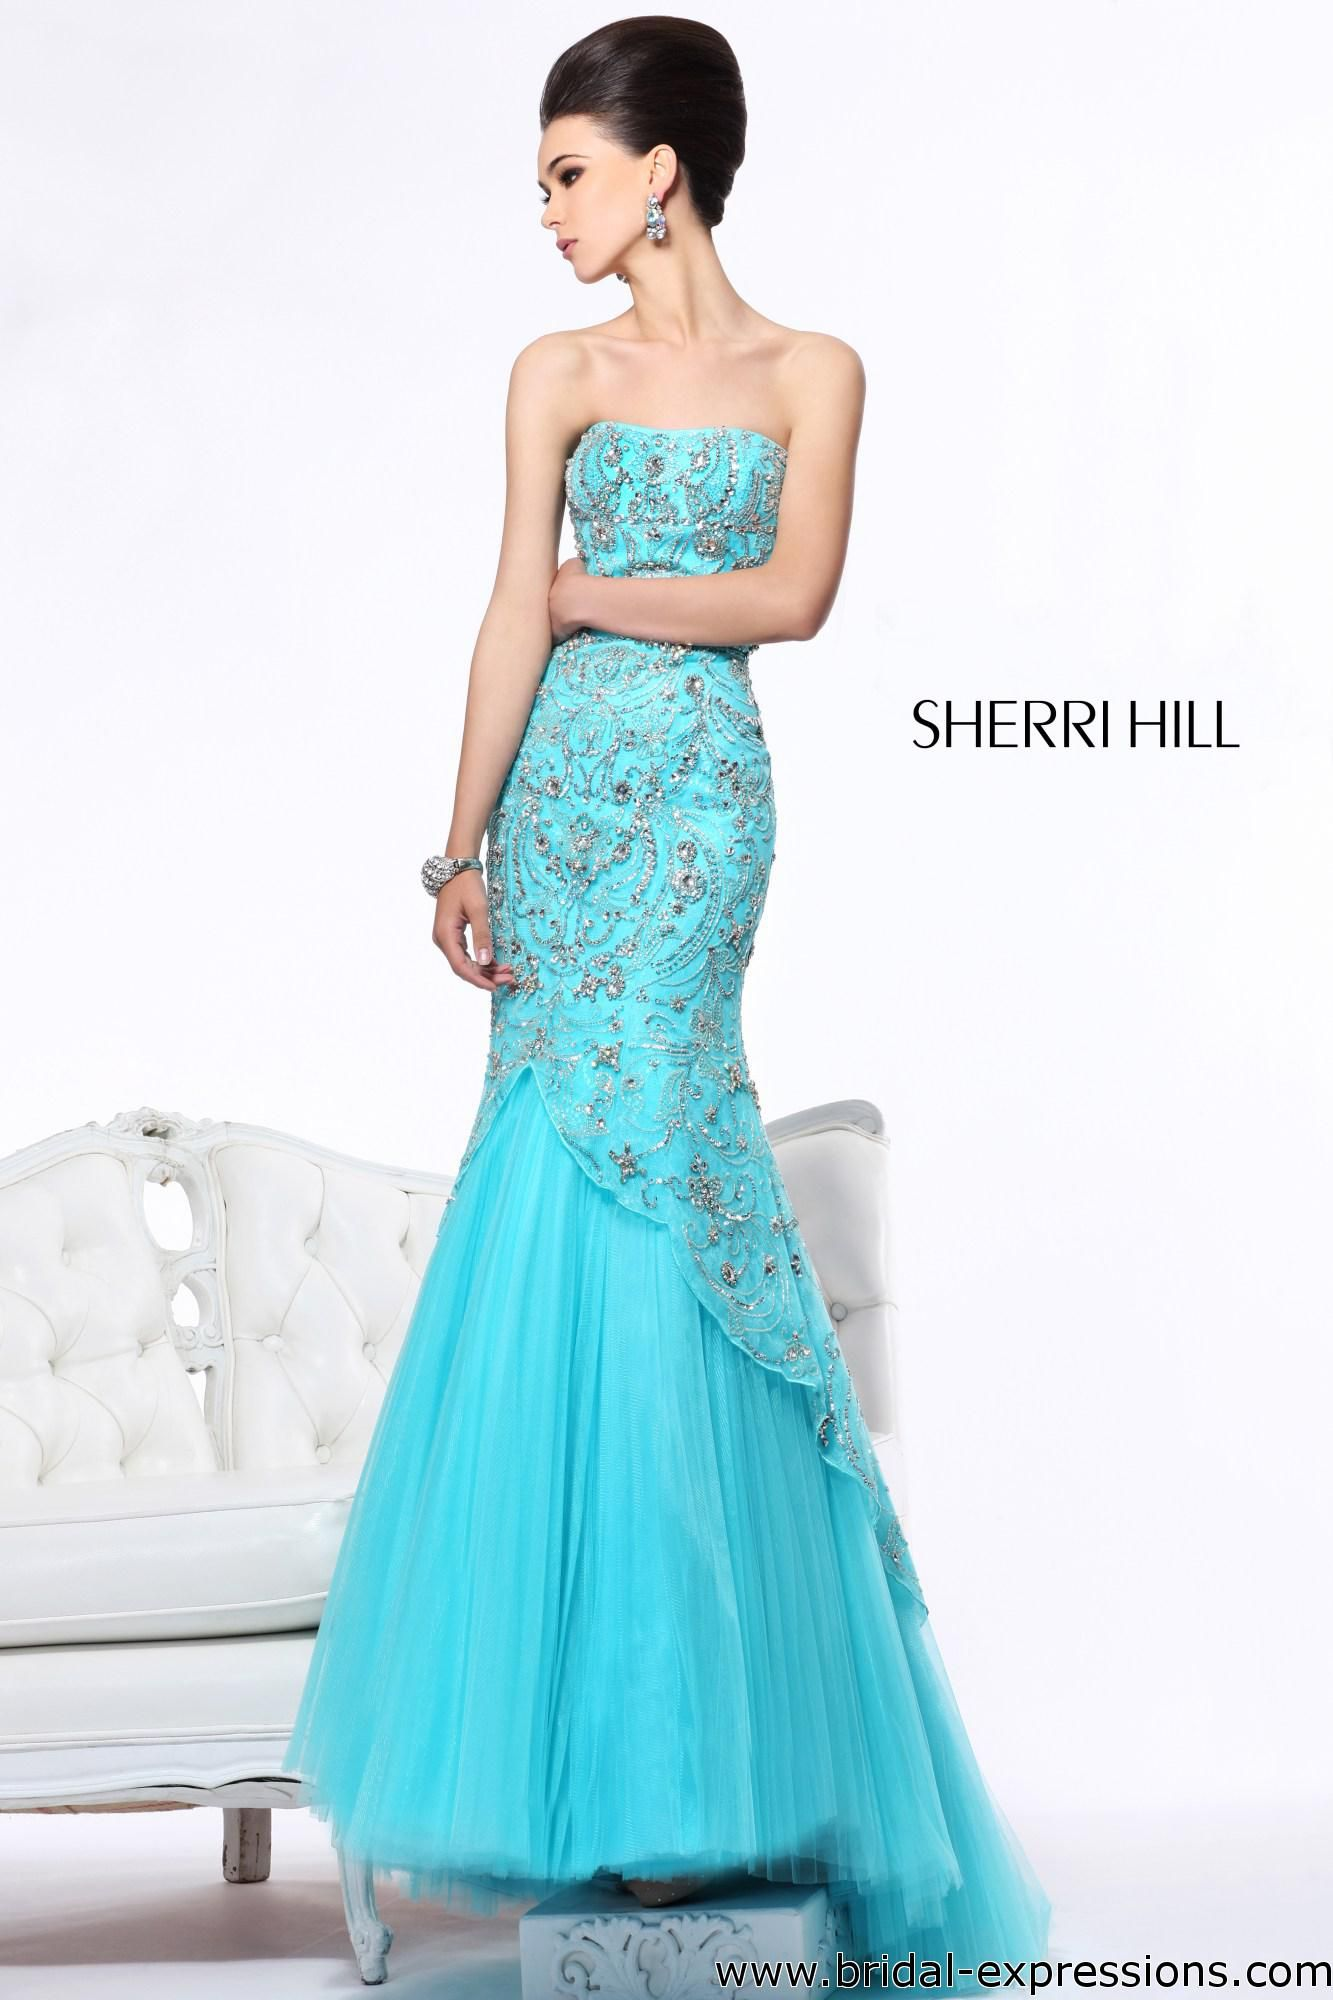 sherri hill mermaid dresses | sherri hill 21042 beaded mermaid ...